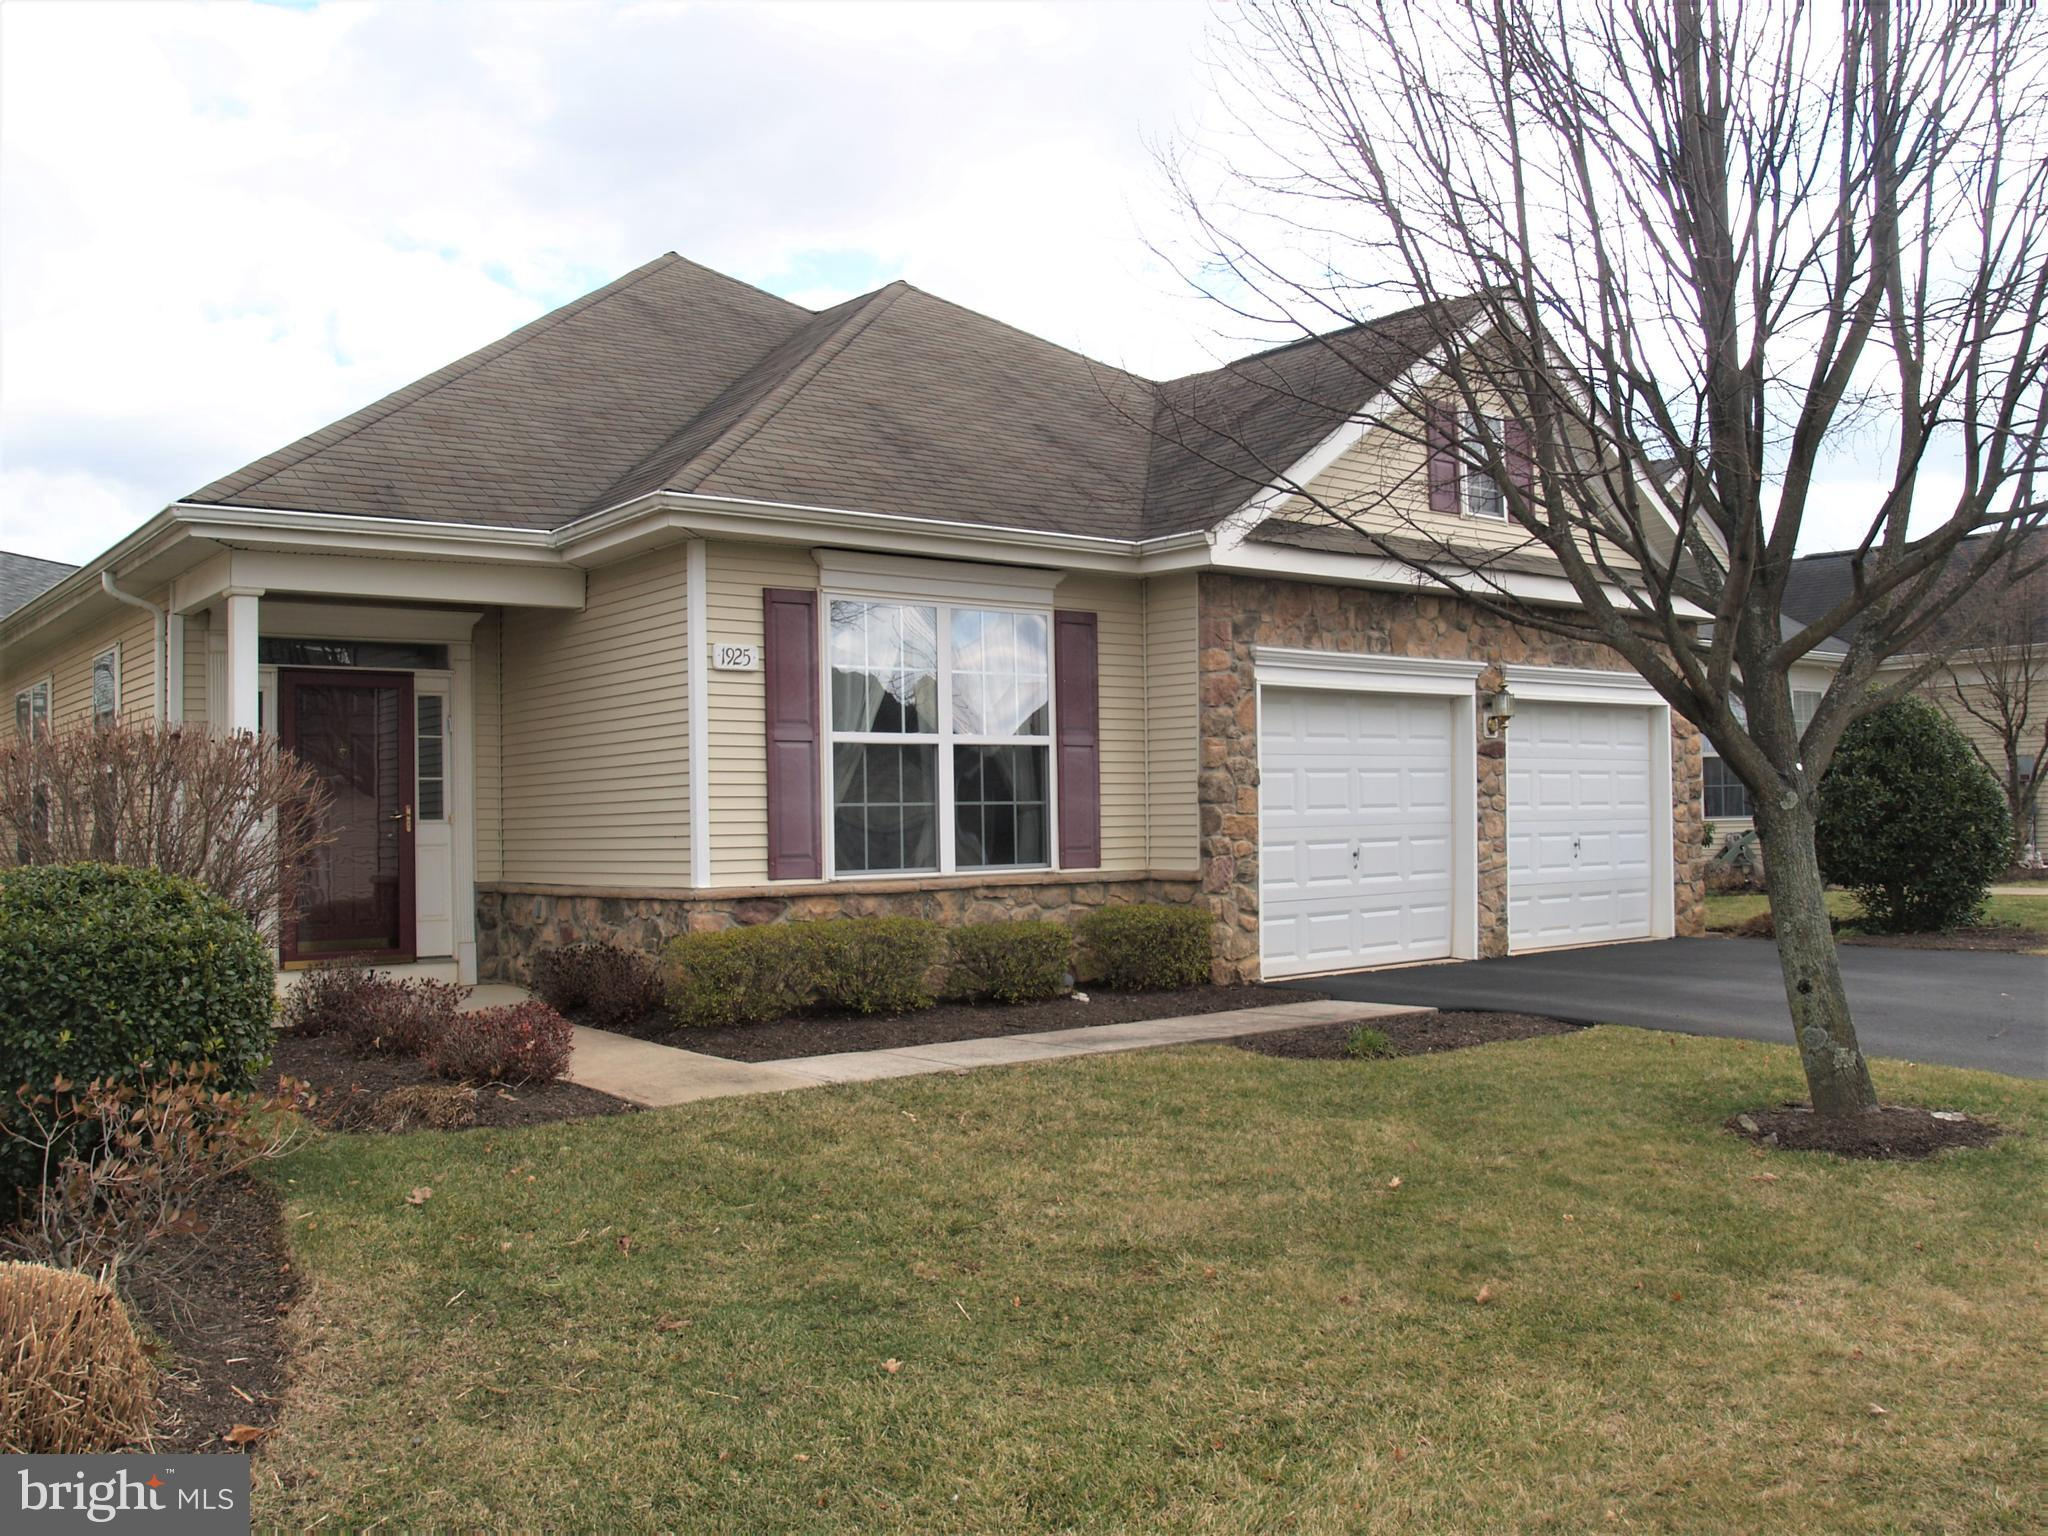 1925 ALEXANDER DRIVE I-13, MACUNGIE, PA 18062